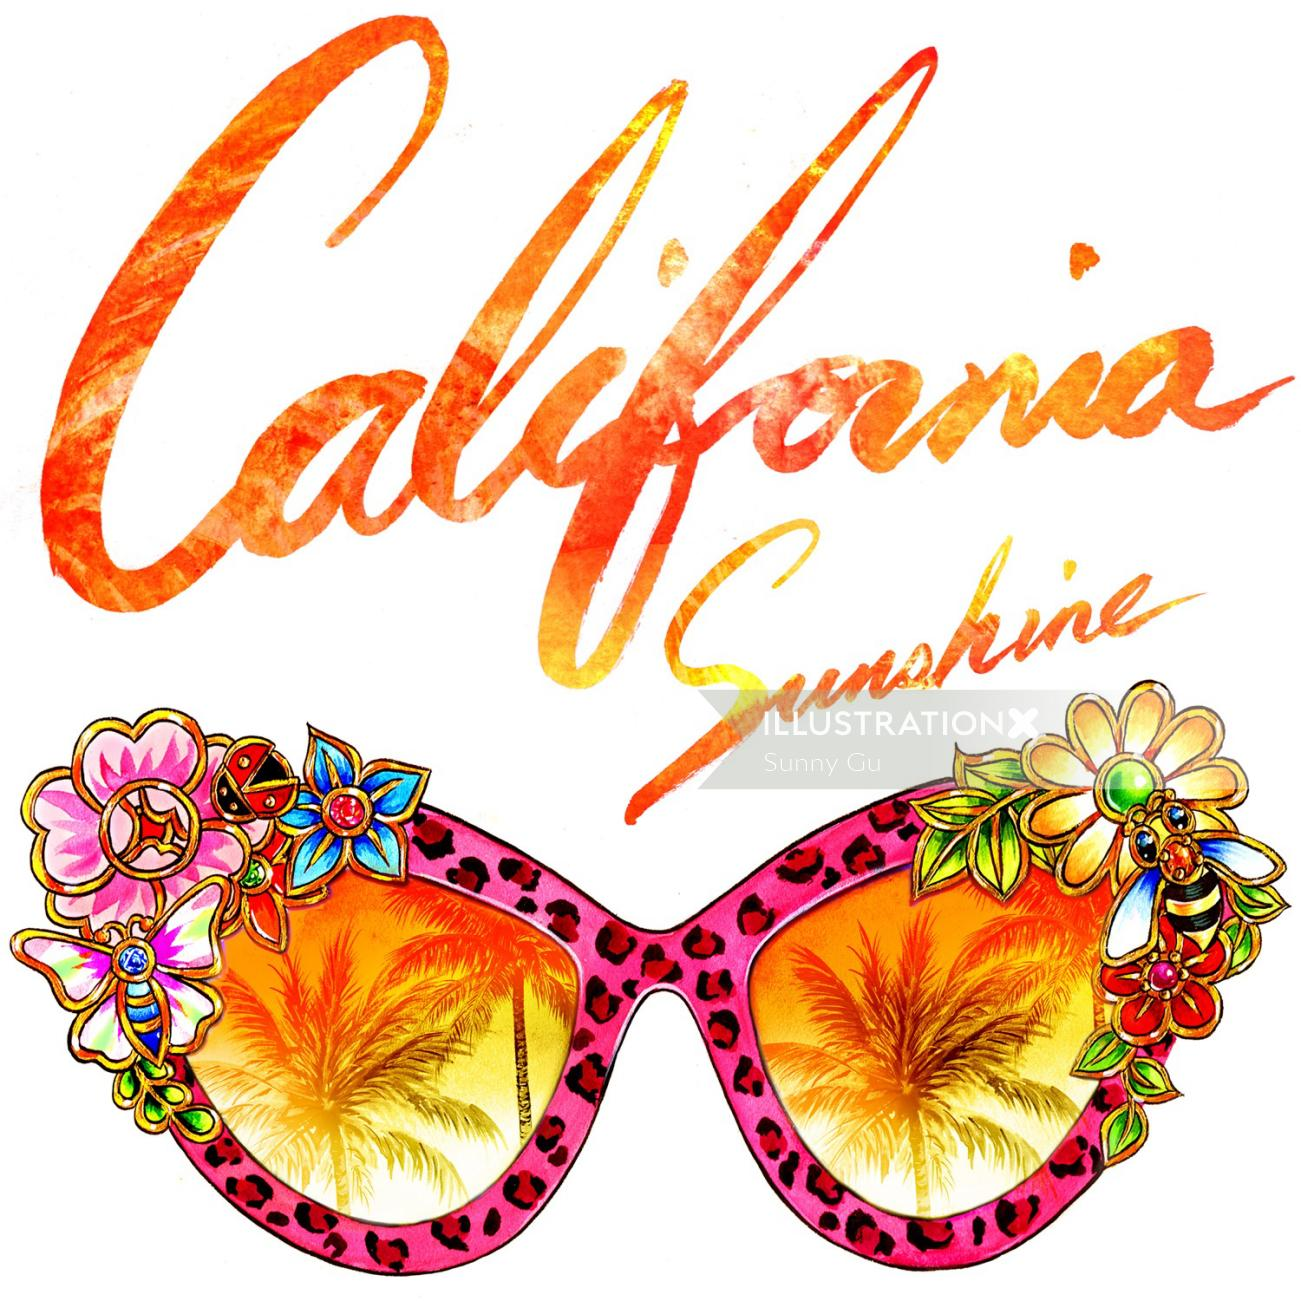 Lettering art design of California sunshine glasses